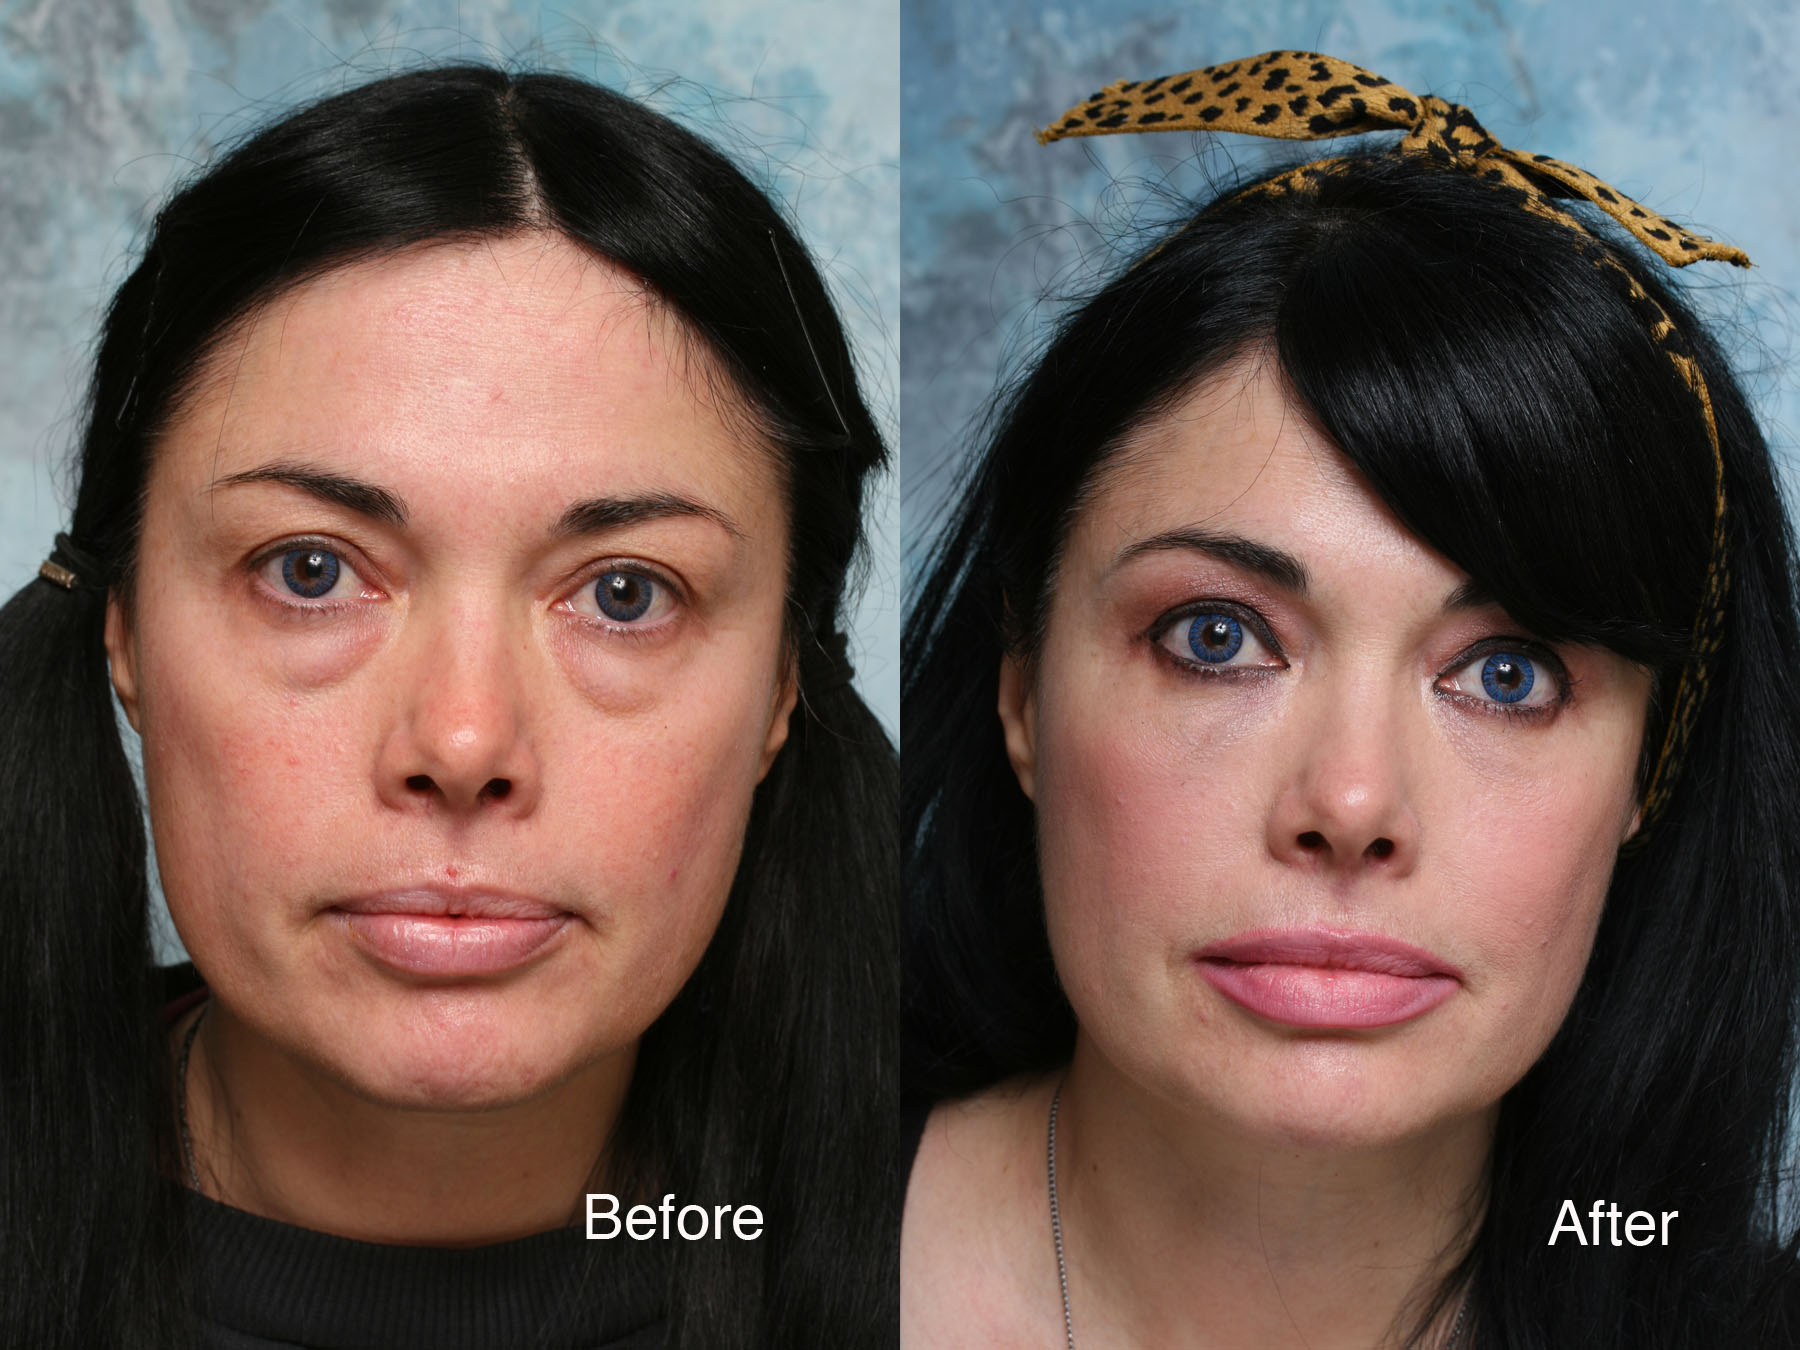 3 Effective Lower Eyelid Lift Treatments To Get Beautiful ... |Lower Blepharoplasty Recovery Photos